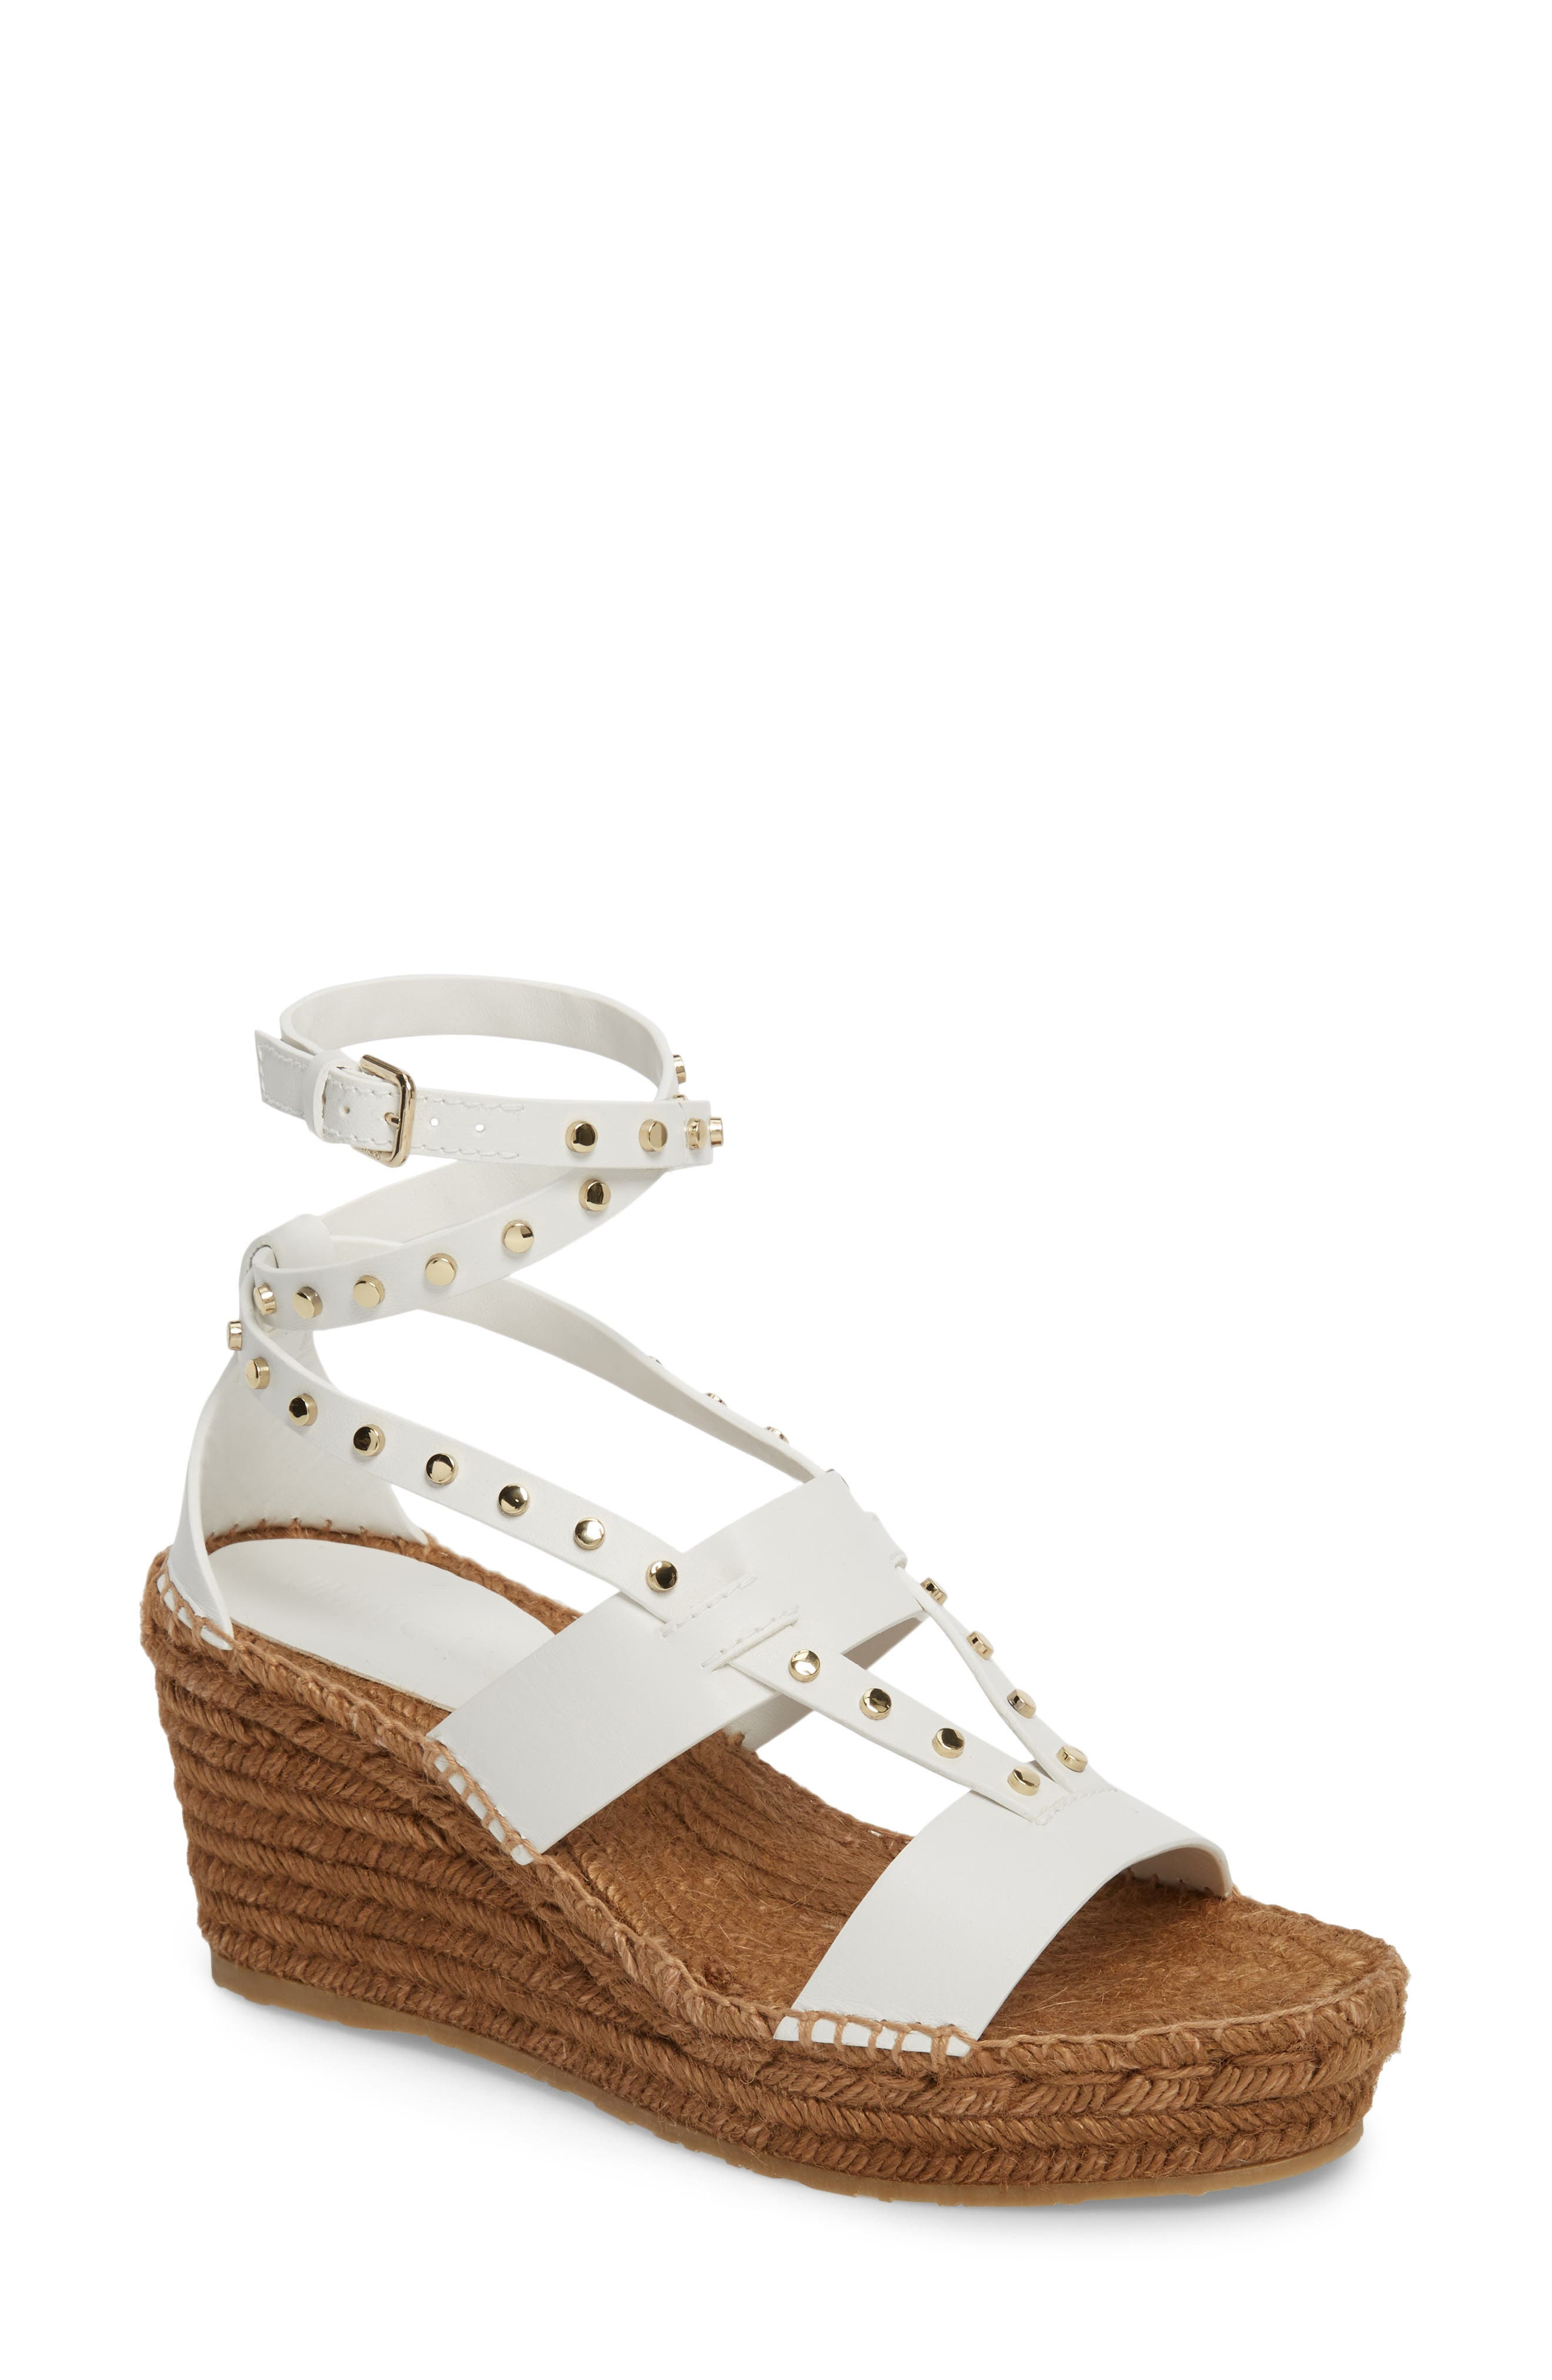 Danica Studded Wedge Espadrille,                             Main thumbnail 1, color,                             WHITE